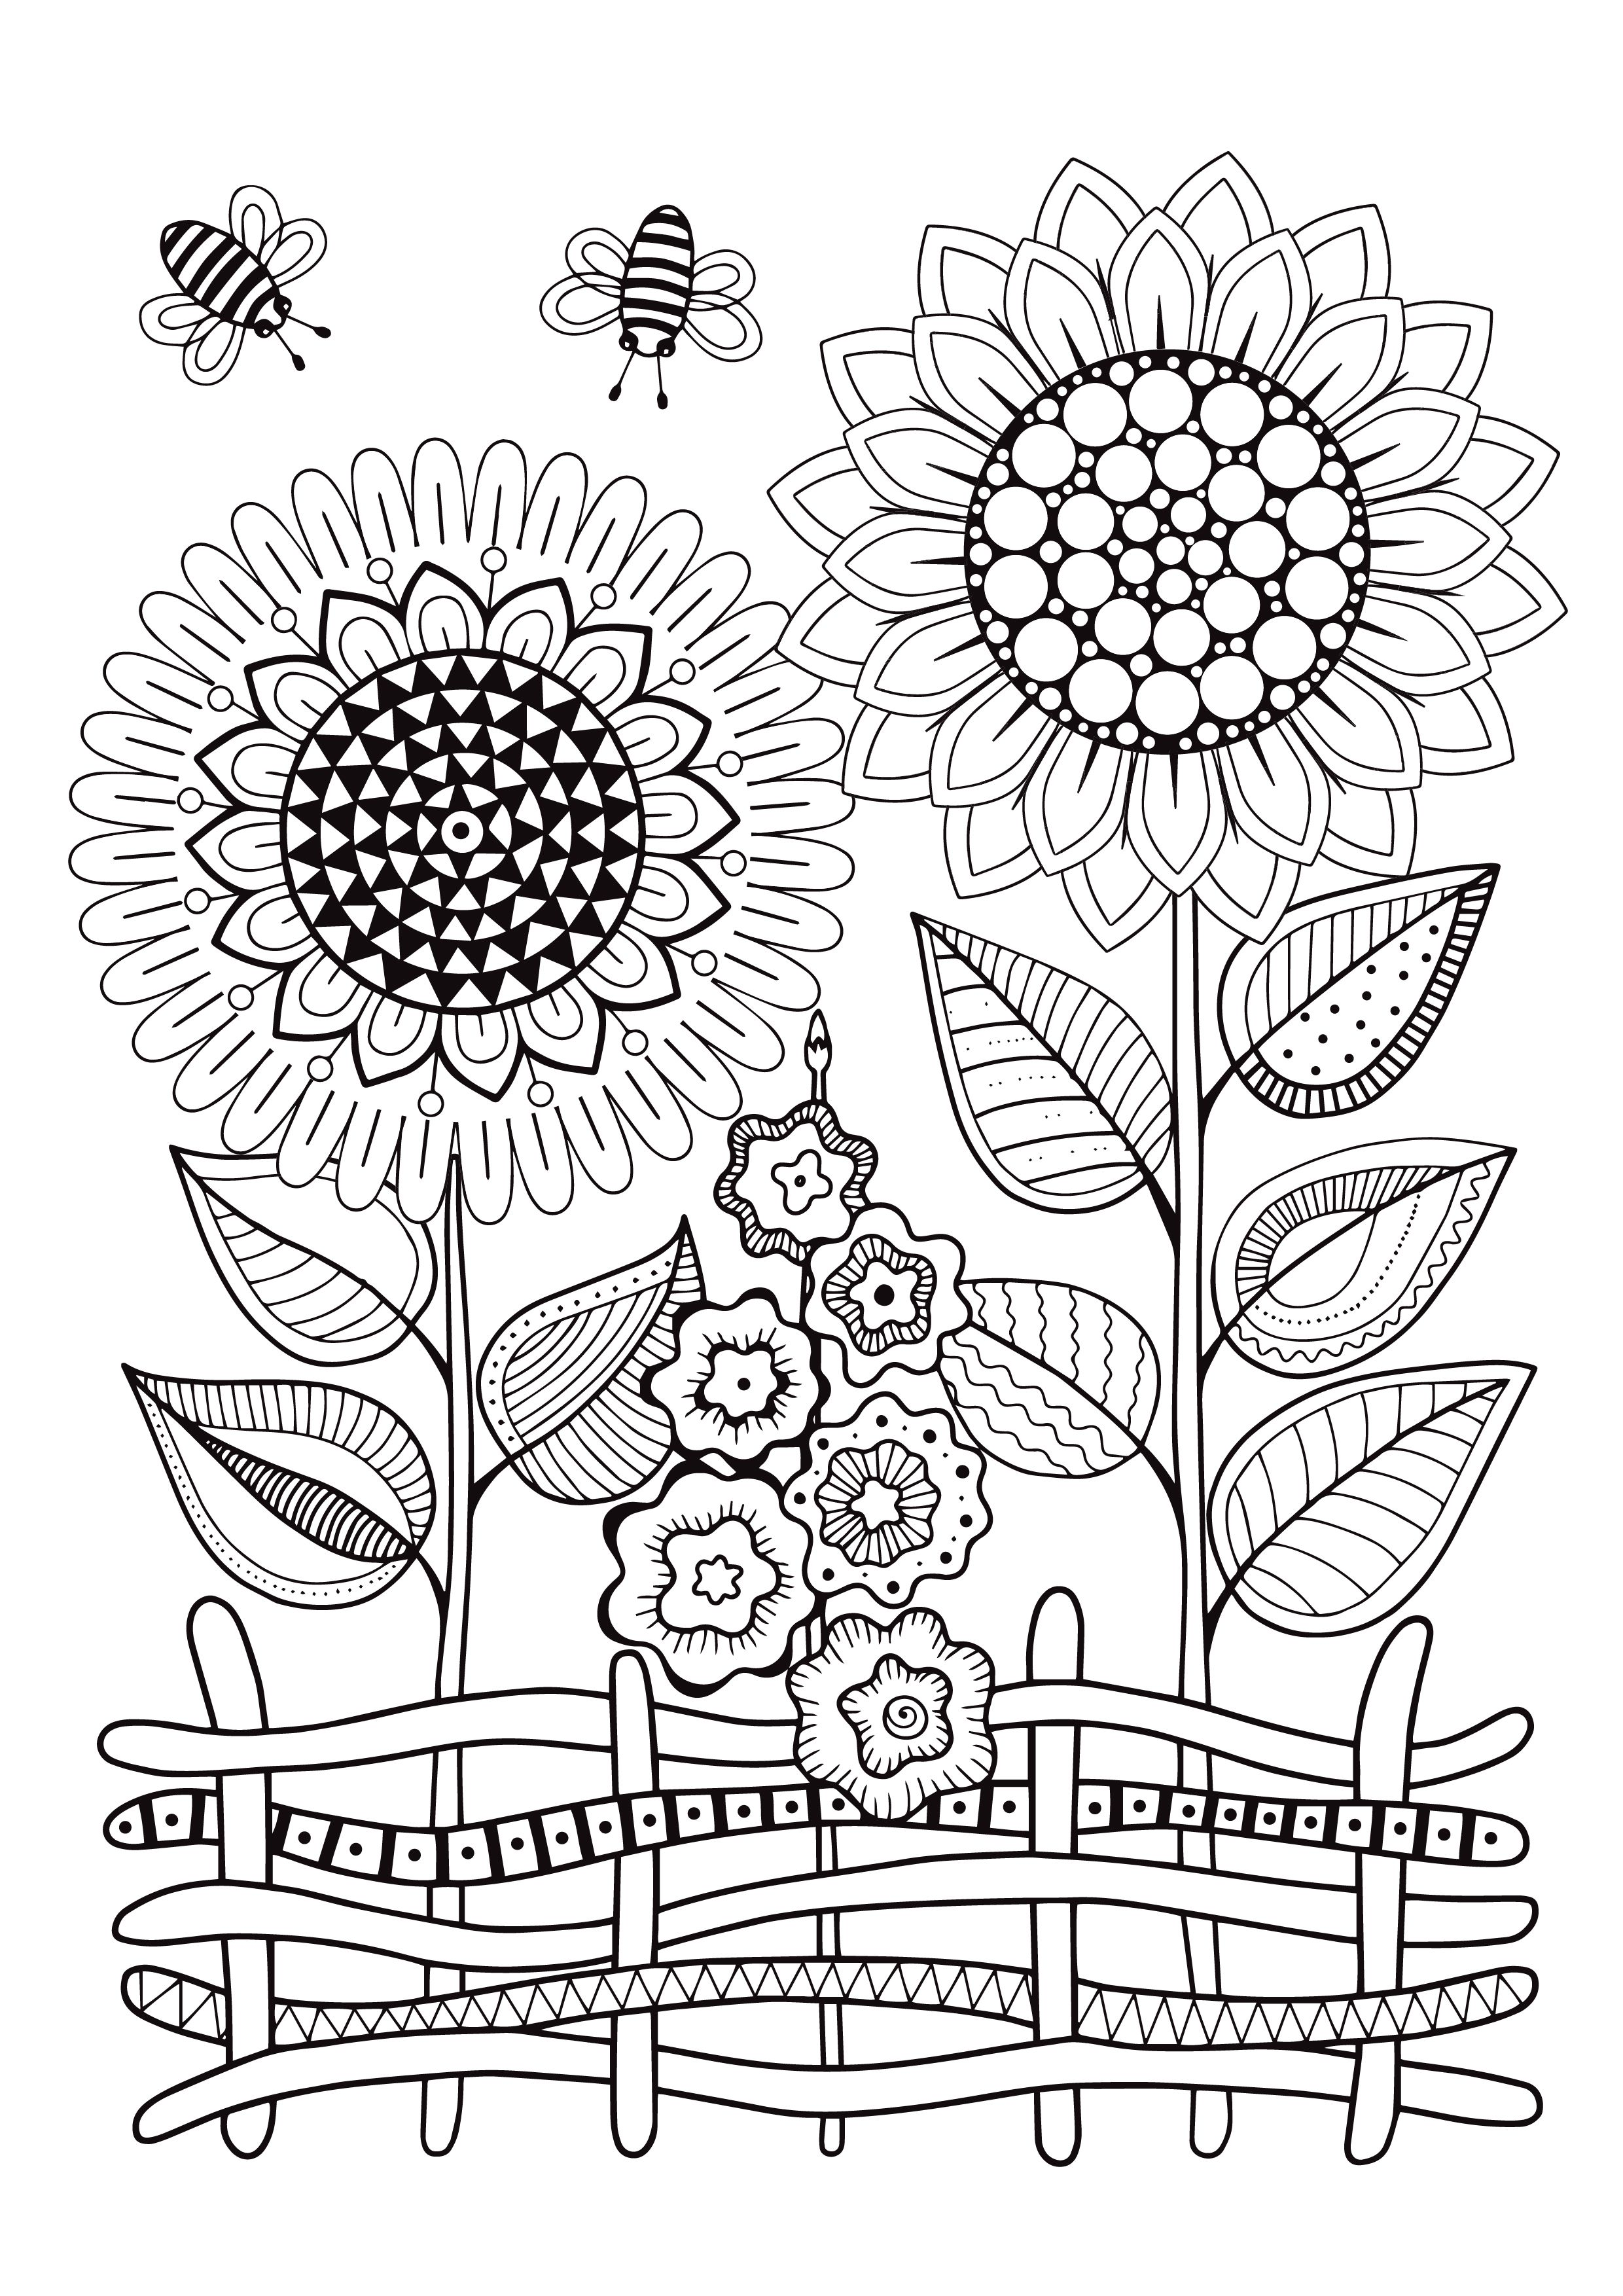 Mindfulness Coloring Pages 12 Flowers In 2020 Summer Coloring Pages Sunflower Coloring Pages Mindfulness Colouring